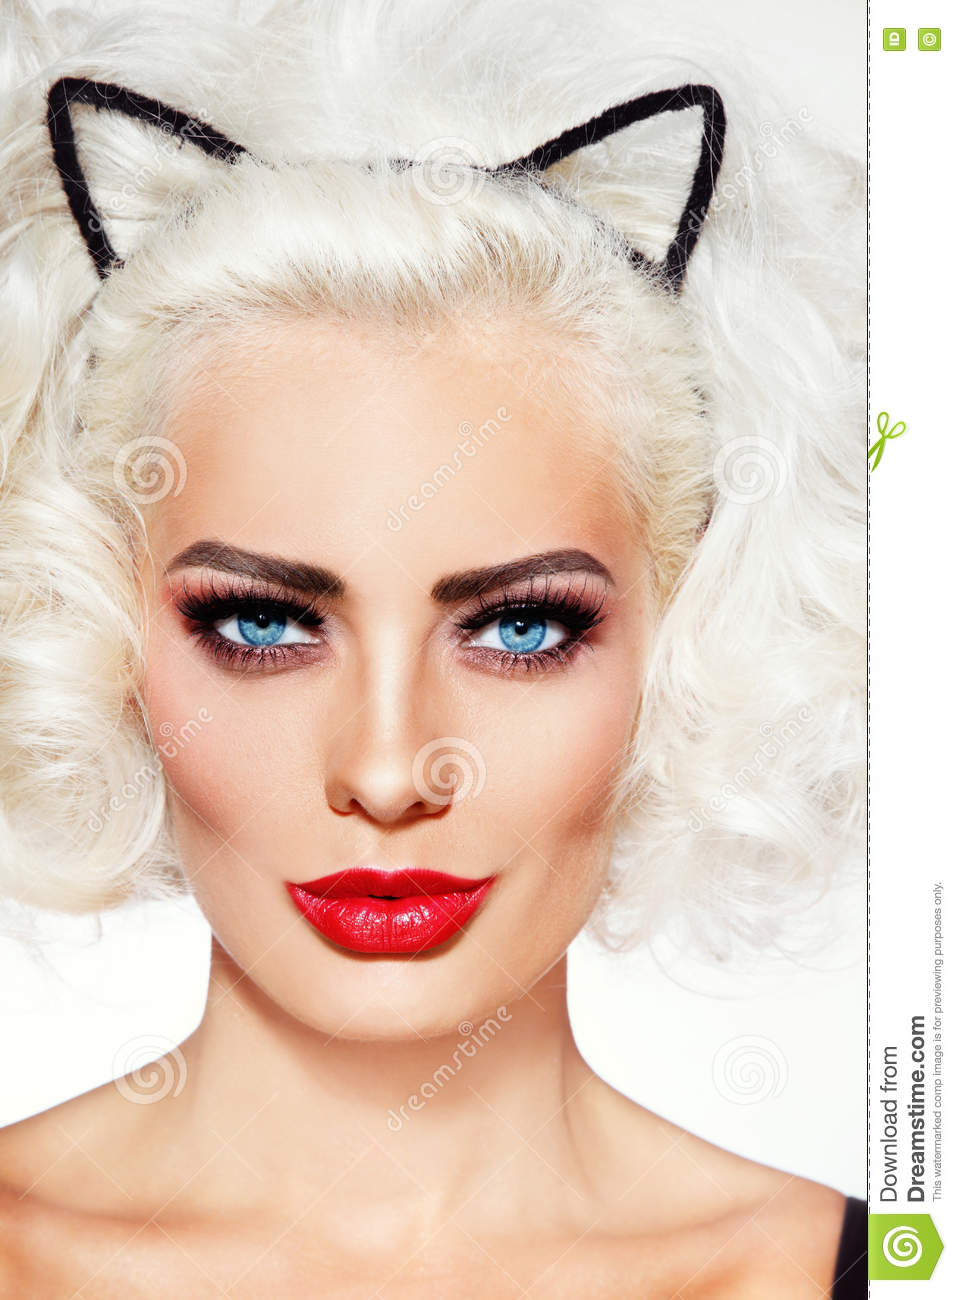 Blonde Beauty Stock Image Image Of Eyebrows Attractive 76403353